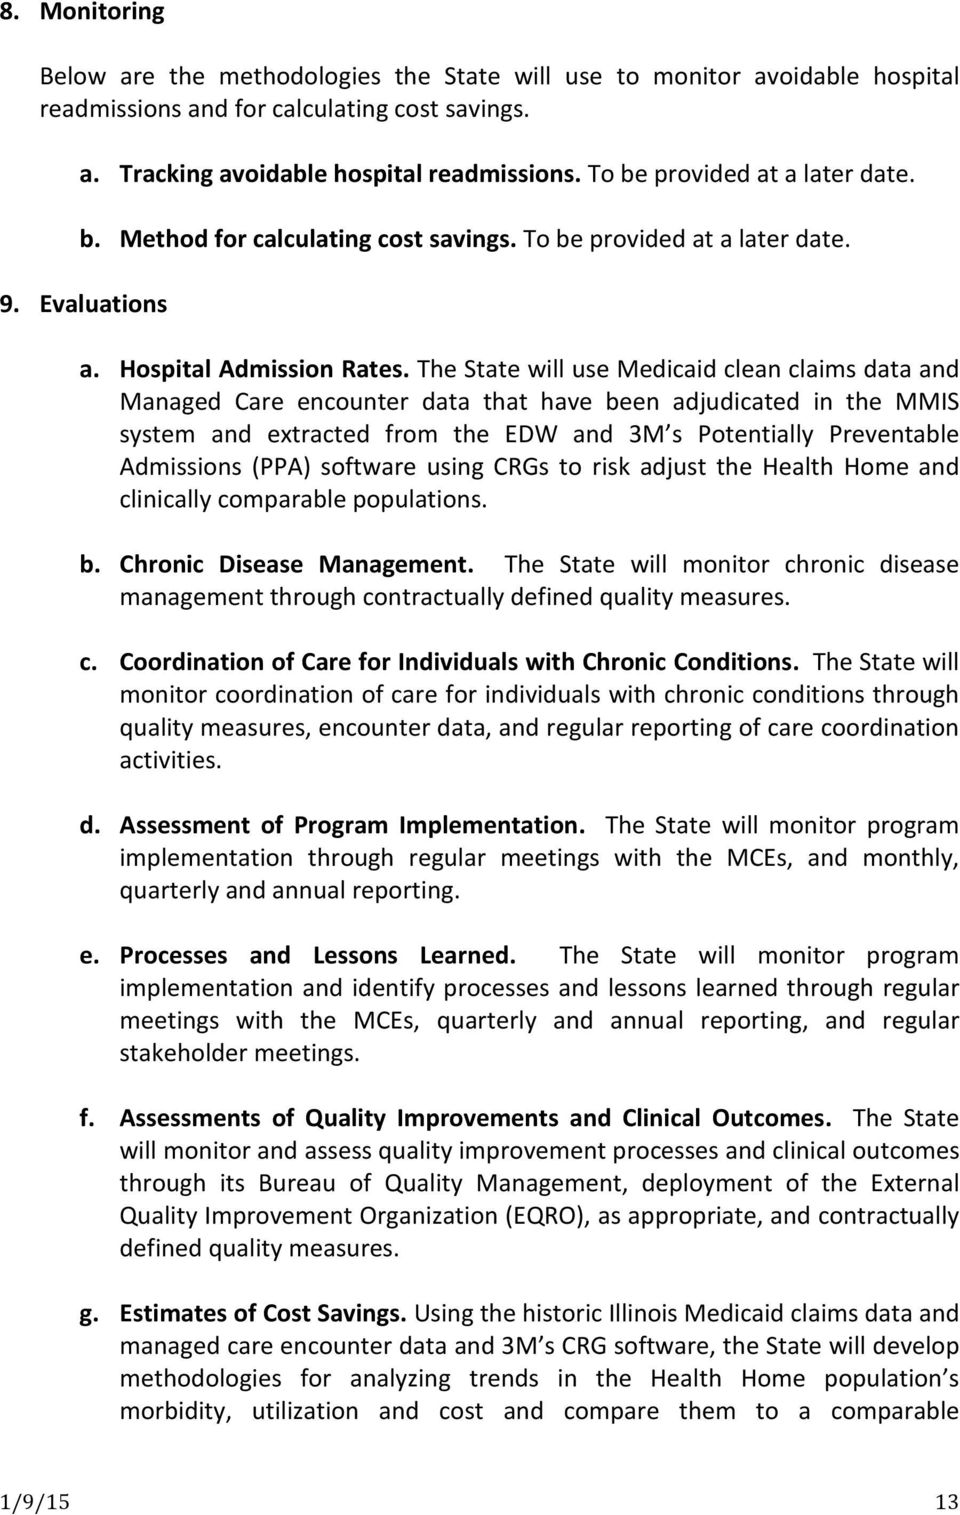 The State will use Medicaid clean claims data and Managed Care encounter data that have been adjudicated in the MMIS system and extracted from the EDW and 3M s Potentially Preventable Admissions